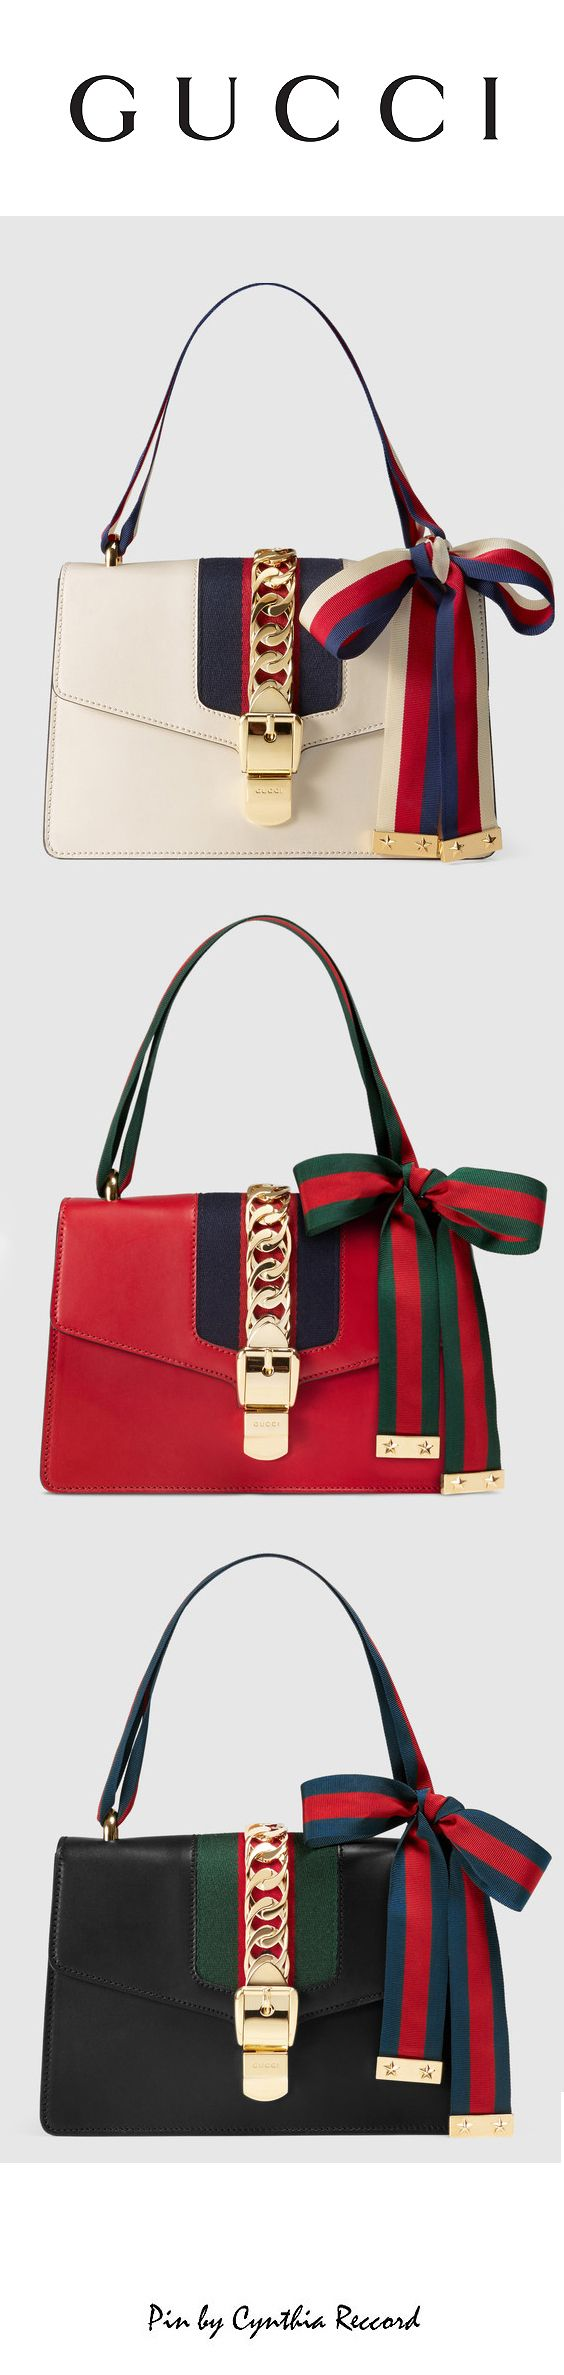 a3fc1a827138d6 Gucci   Sylvie Leather Shoulder Bag with two interchangeable straps   SS  2016 Collection   cynthia reccord